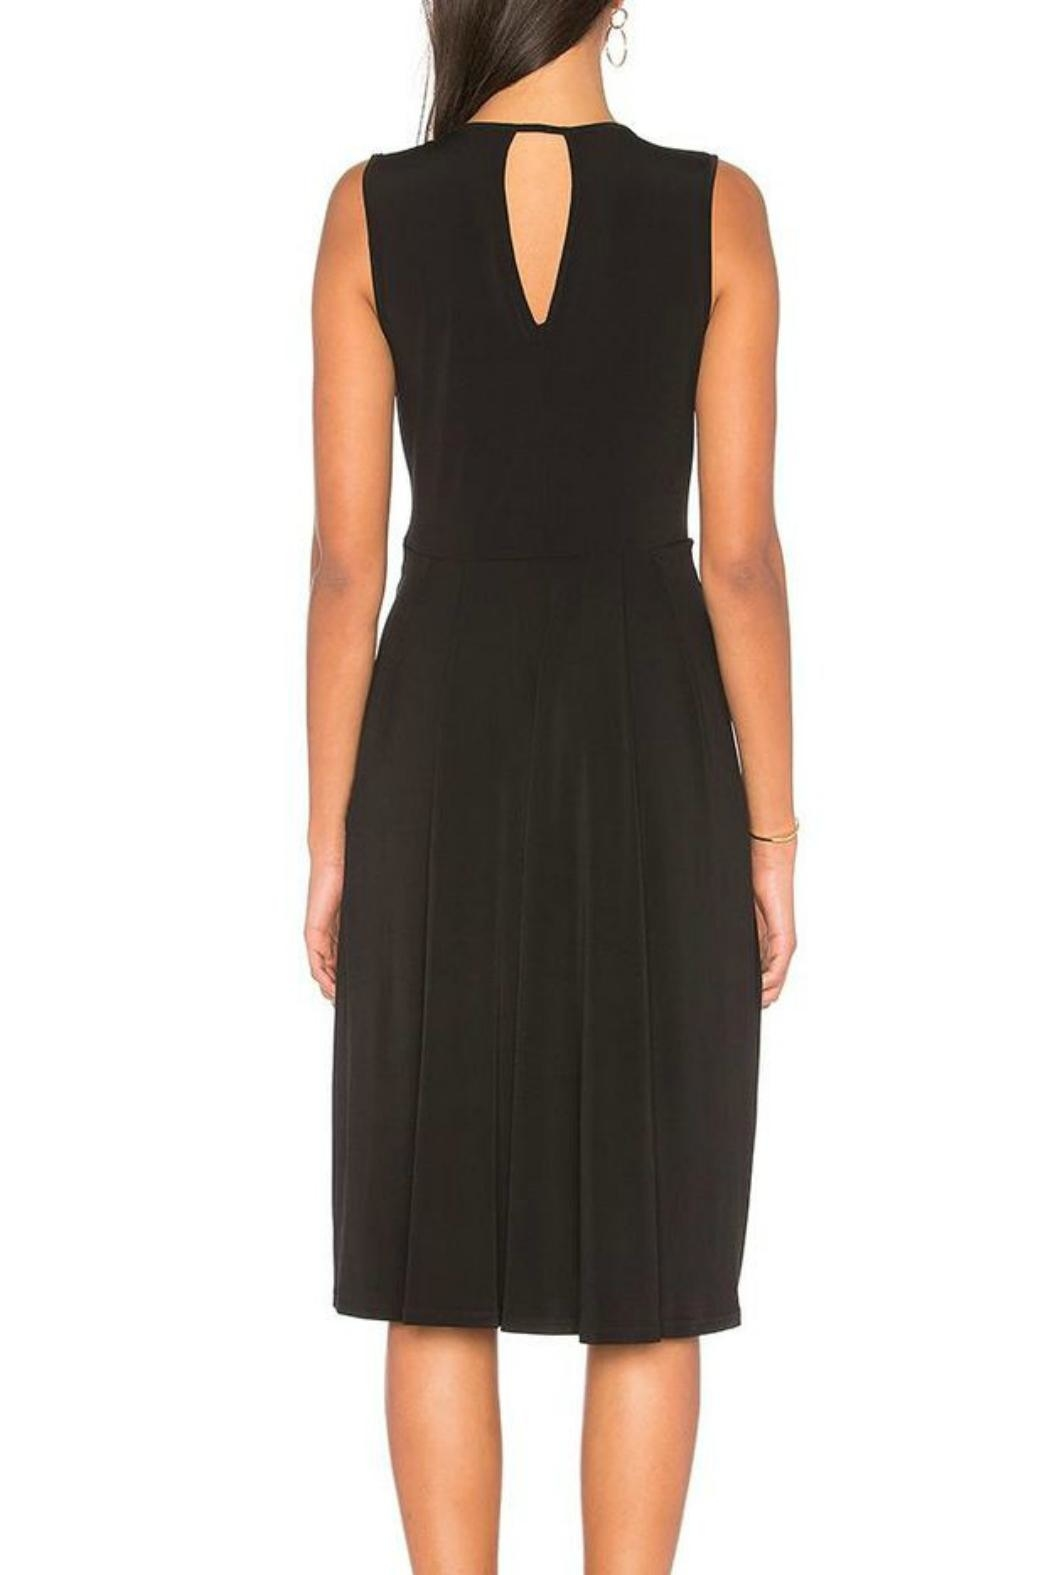 BCBGeneration Drape Midi Dress - Front Full Image